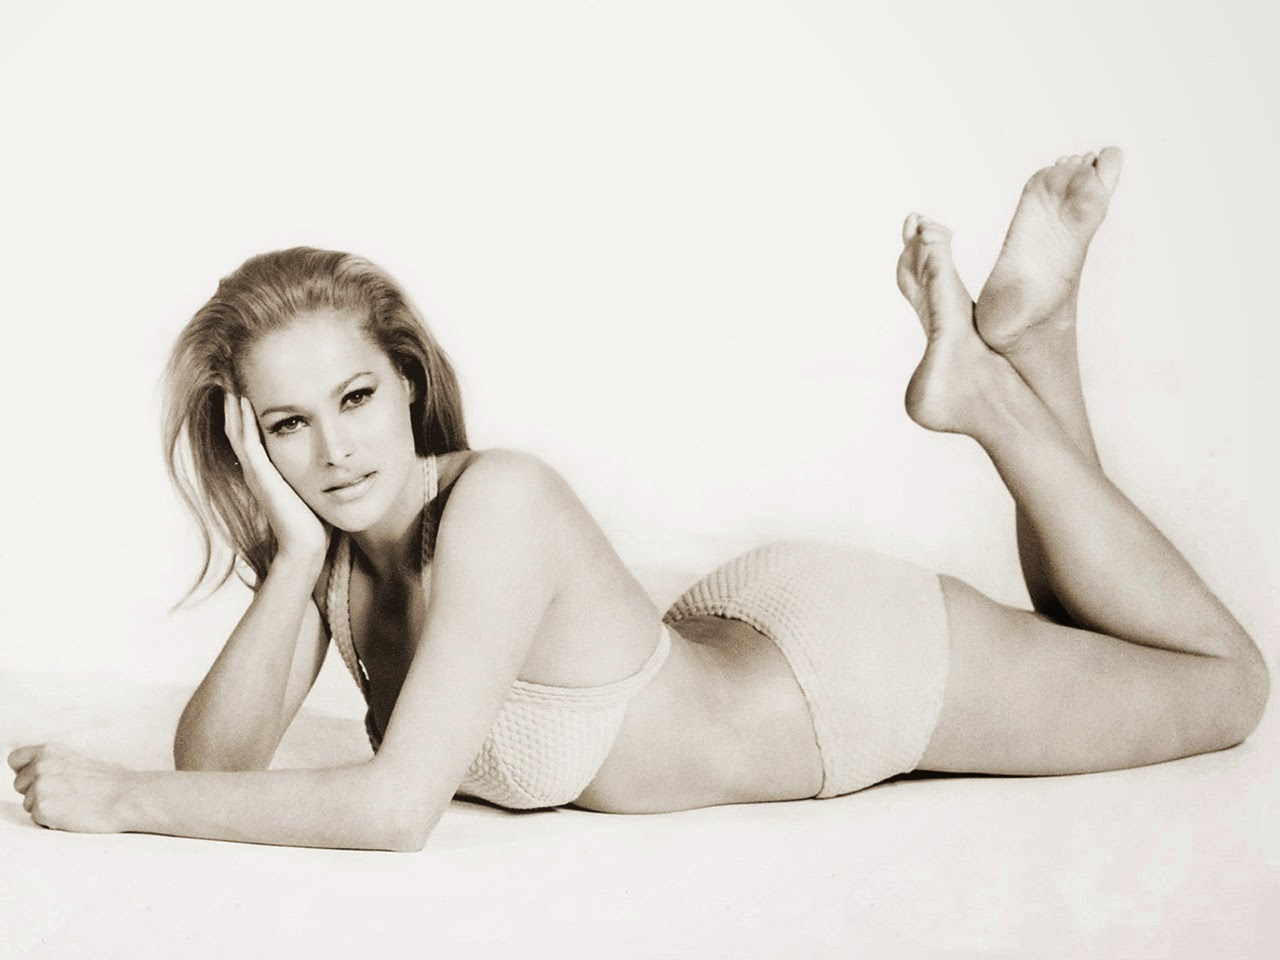 Ursula Andress 1280x800 Wallpapers on chevy logo